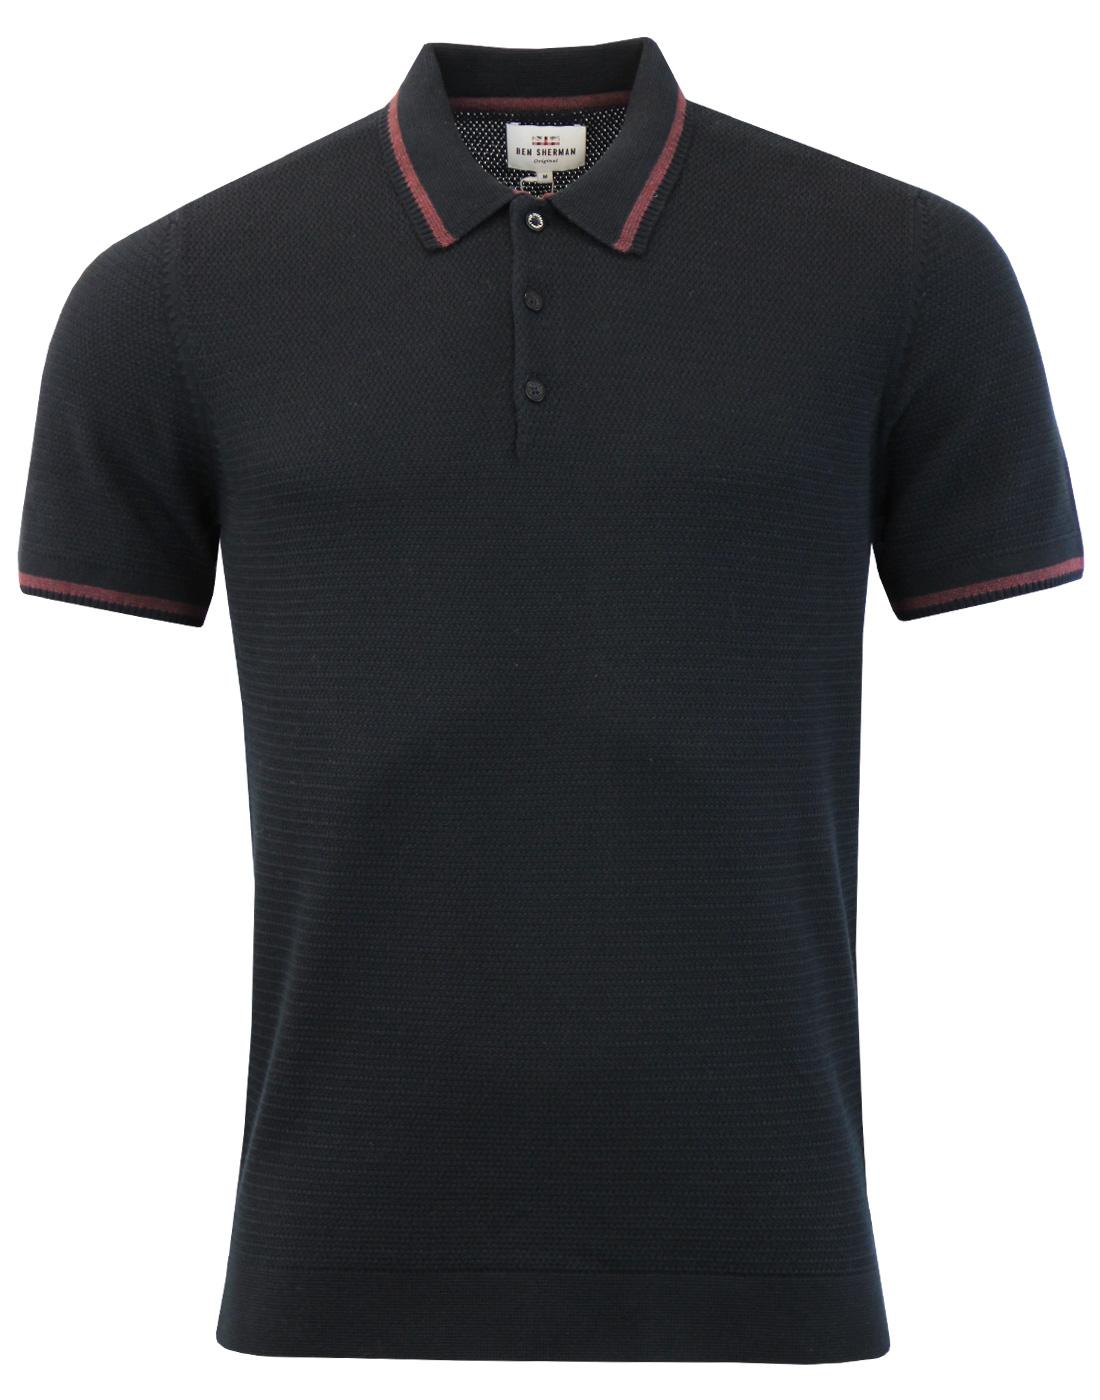 BEN SHERMAN Retro Mod Textured Knit Tipped Polo B